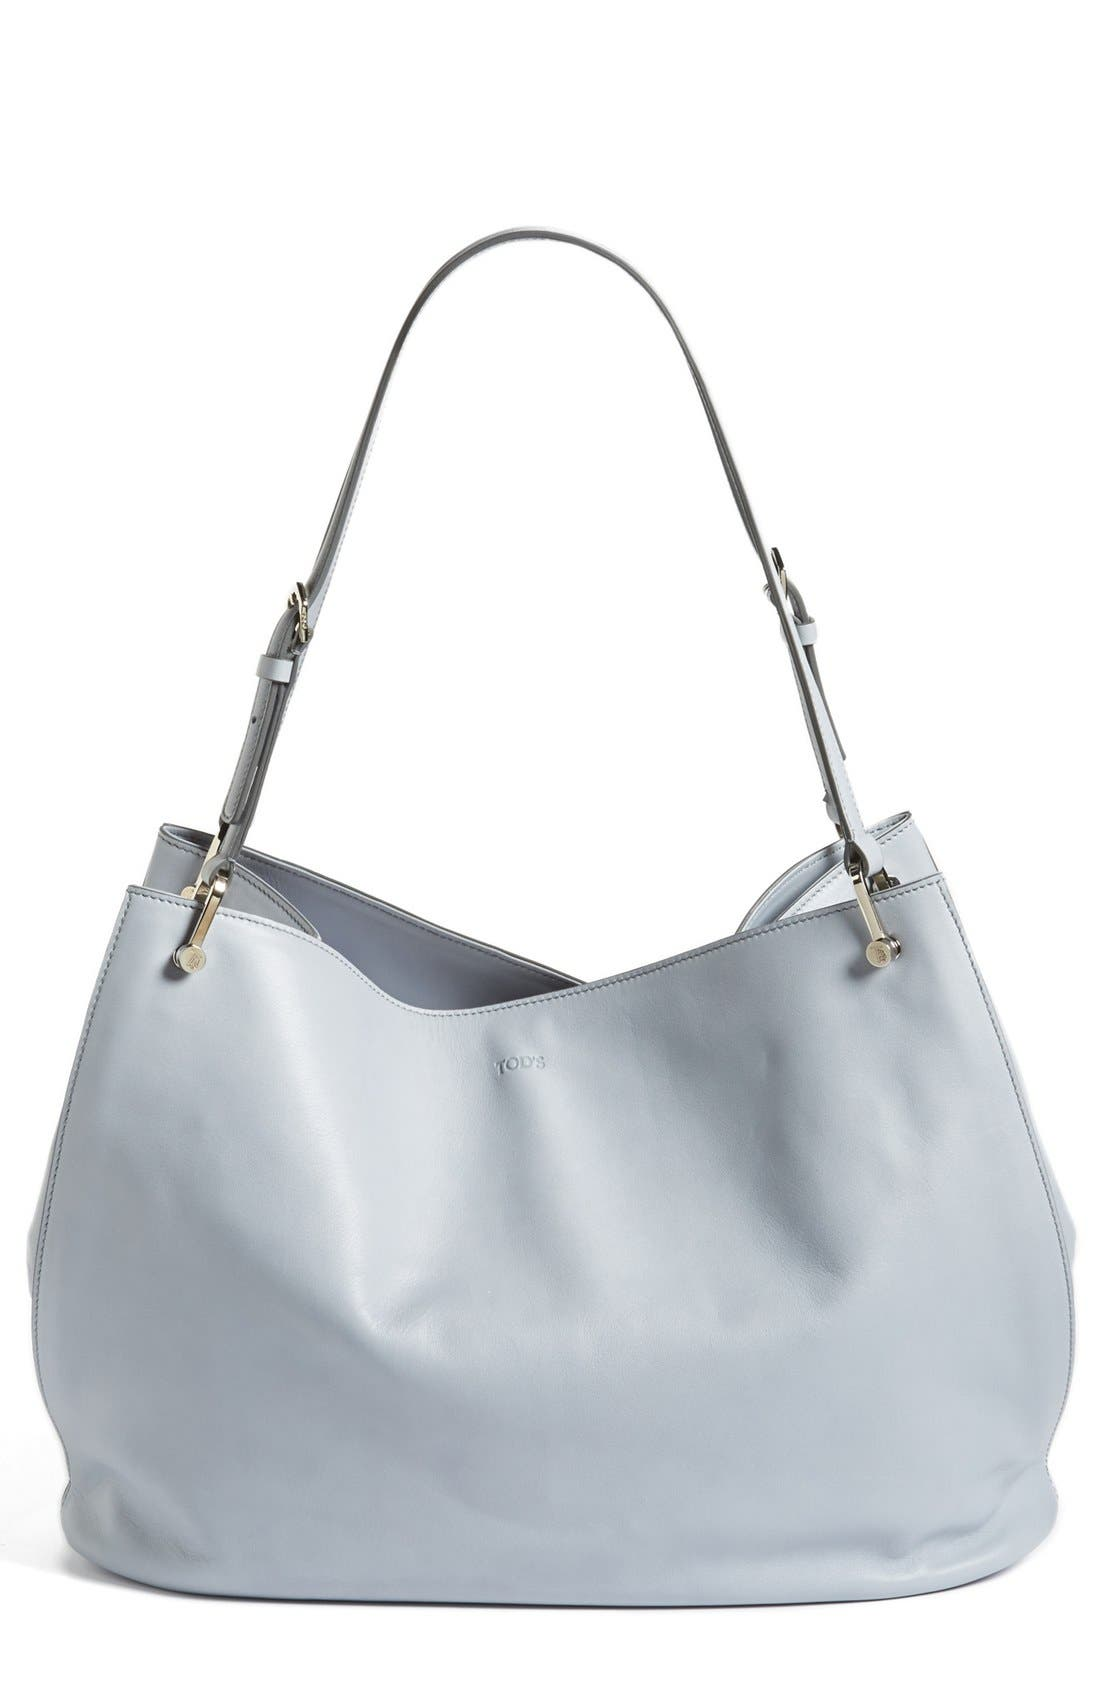 Alternate Image 1 Selected - Tod's 'Borse - Grande' Leather Shopper